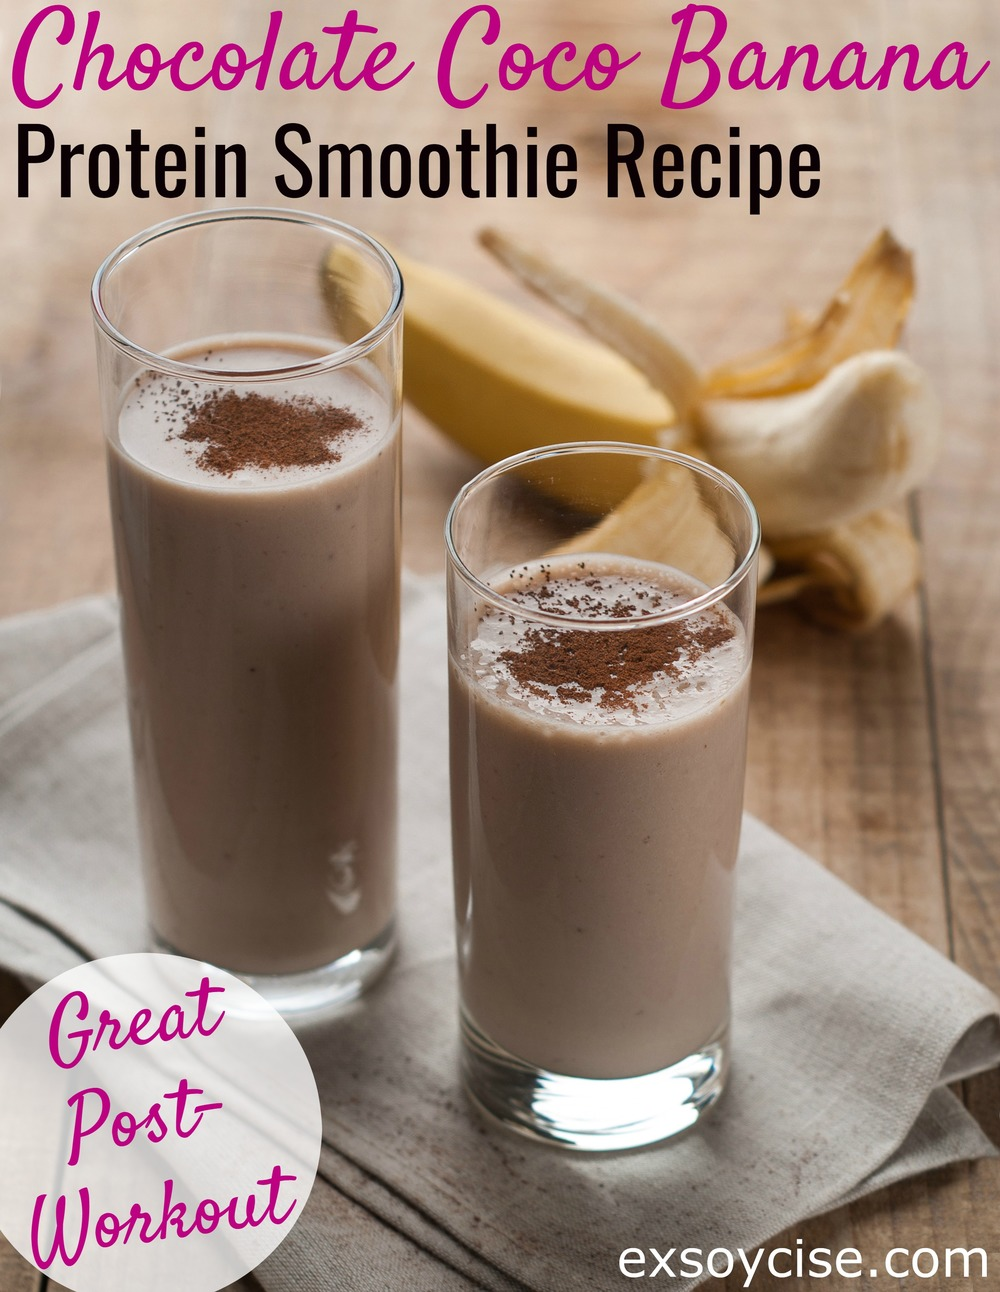 Chocolate coco banana protein smoothie - great post-workout treat!